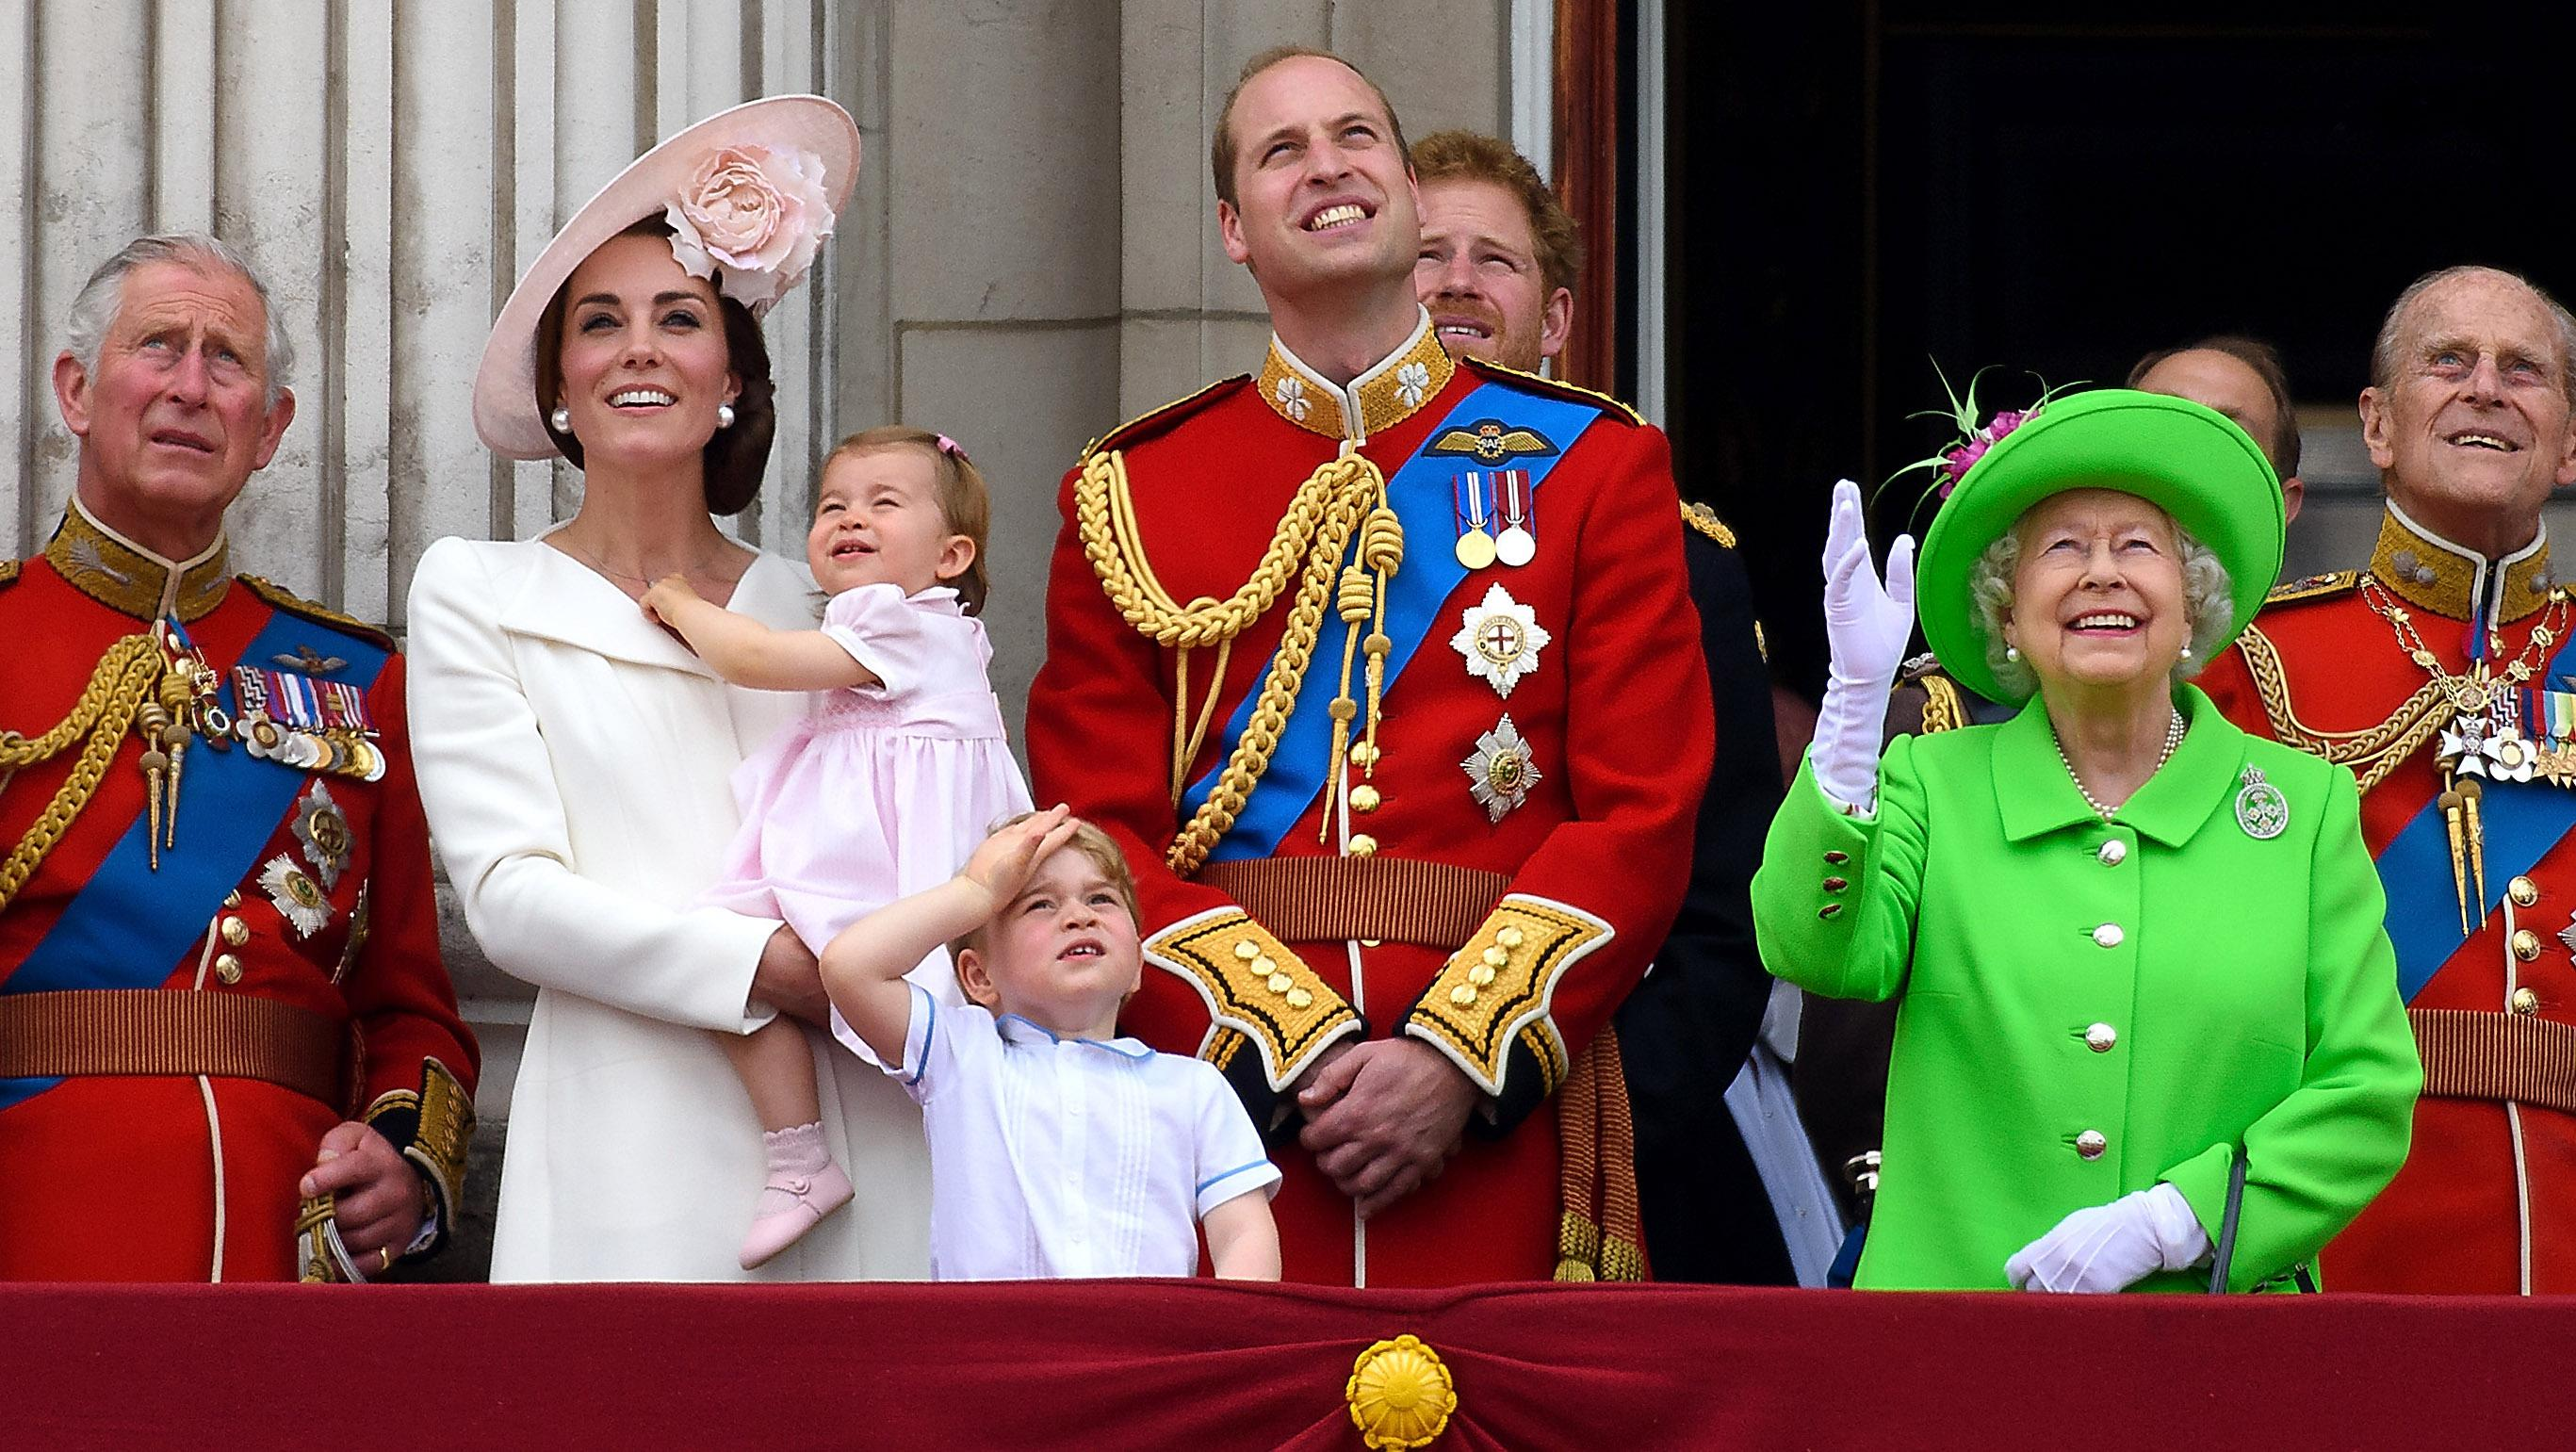 Royal family, prince charles, queen elizabeth, william, kate